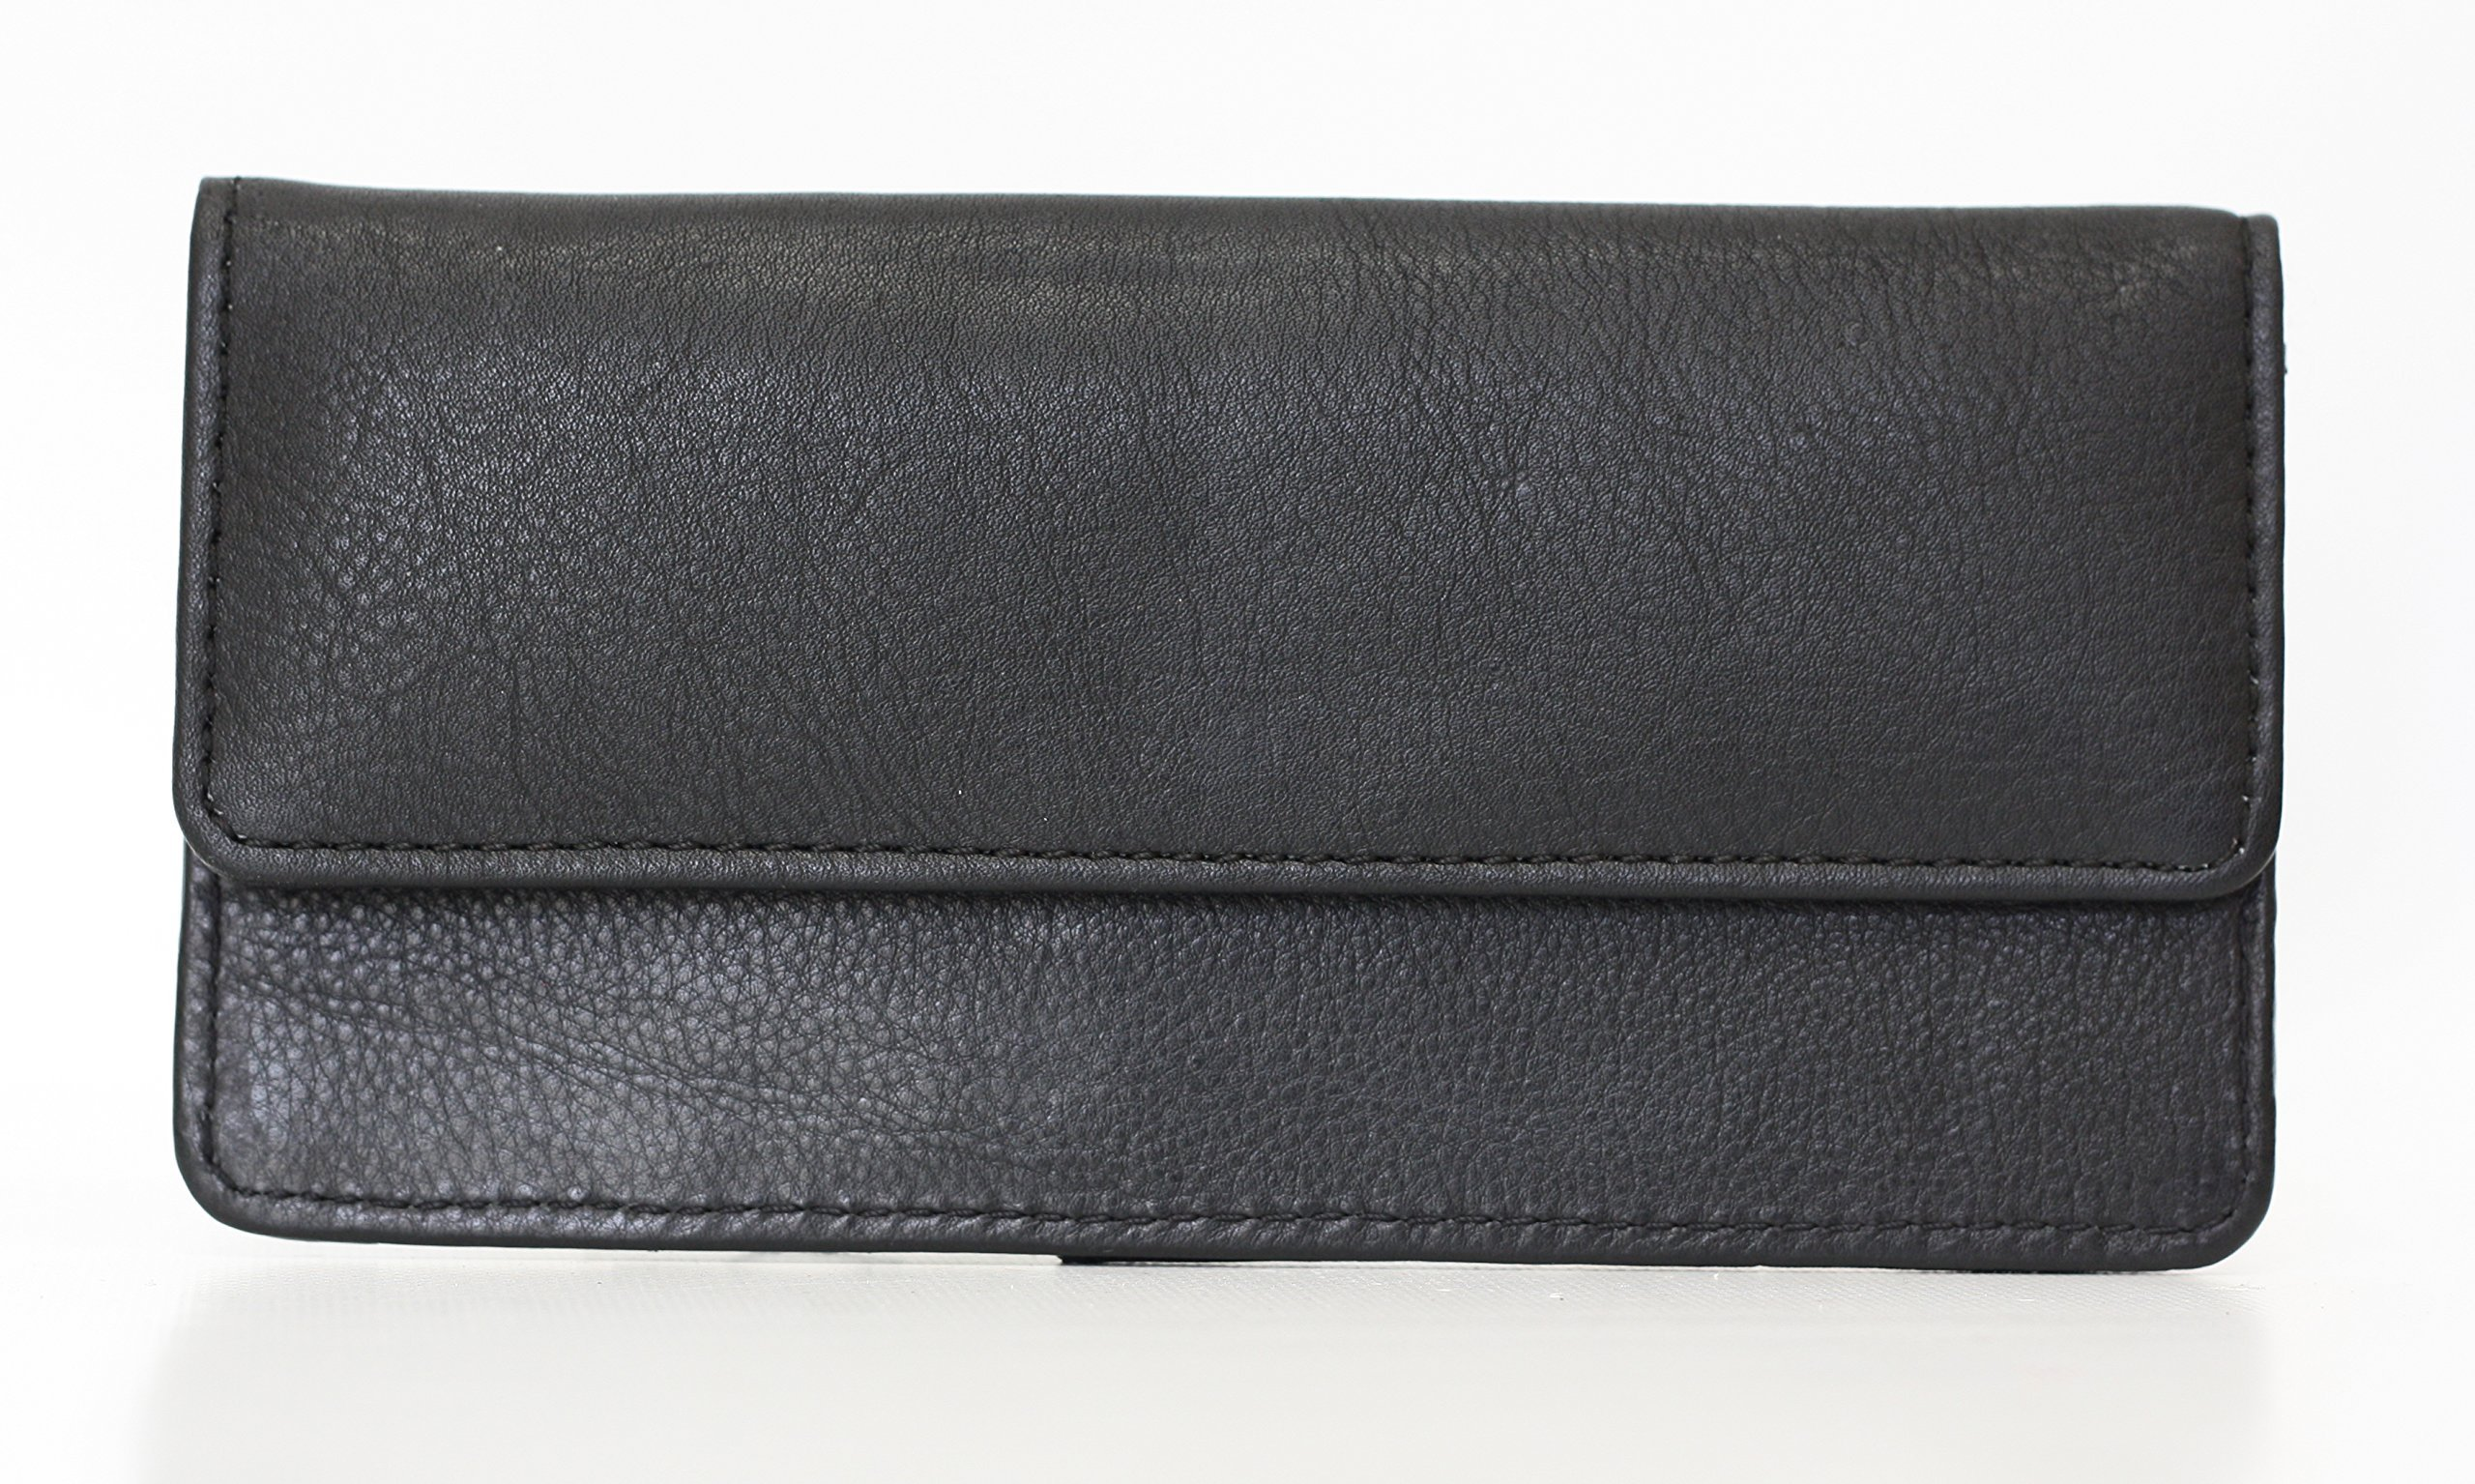 Ashlin Genuine Leather Clutch Wallet, Black L9015-18-01 by Ashlin®